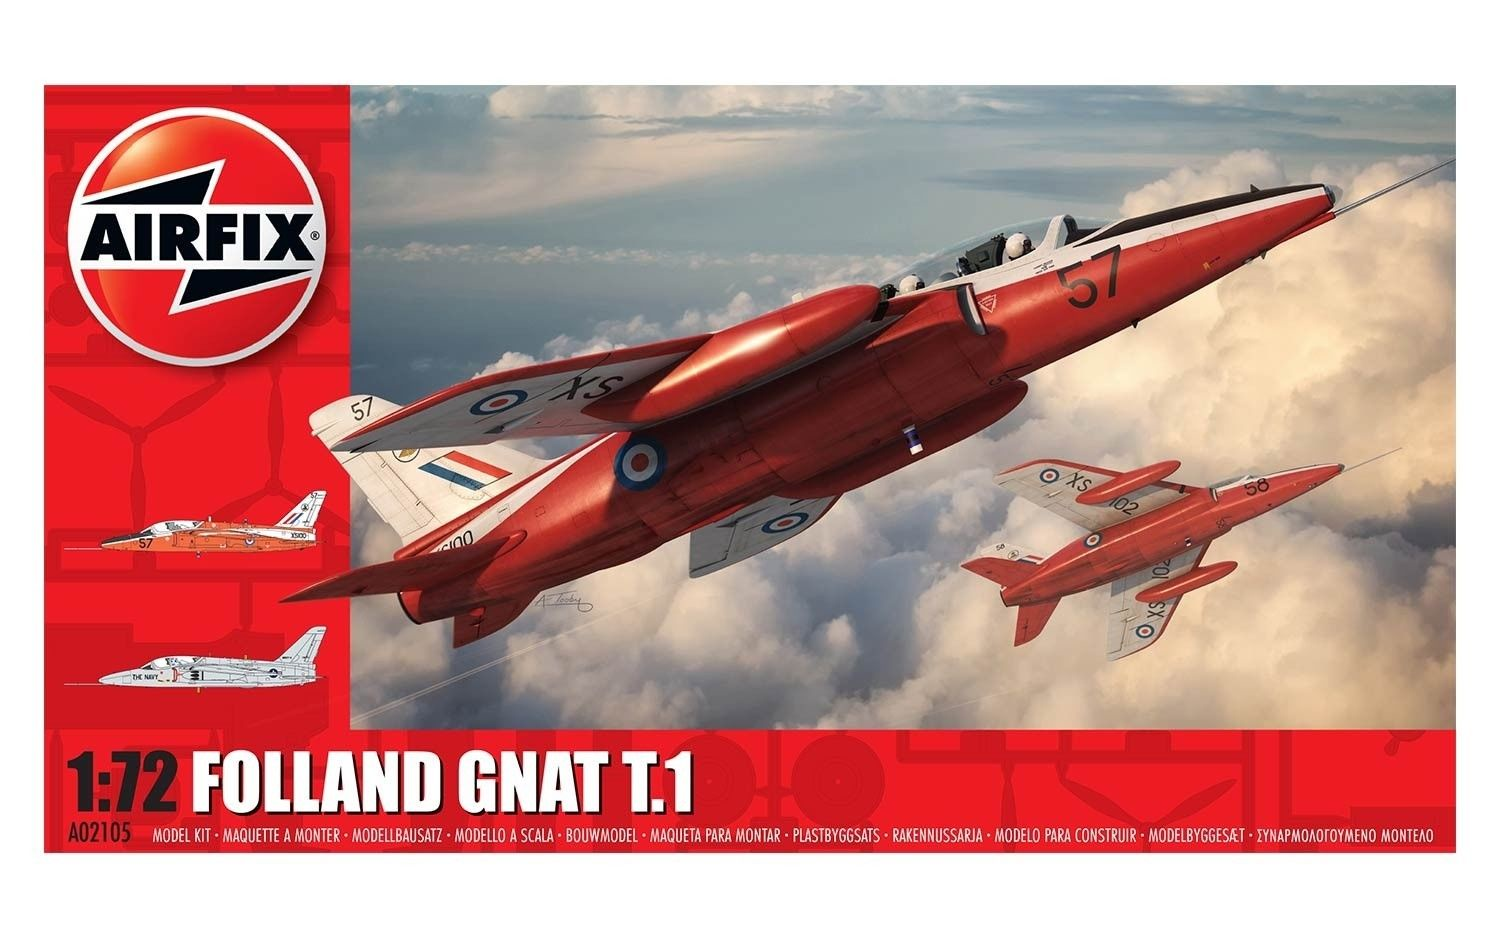 AIRFIX HUNTING PERCIVAL JET 1:72